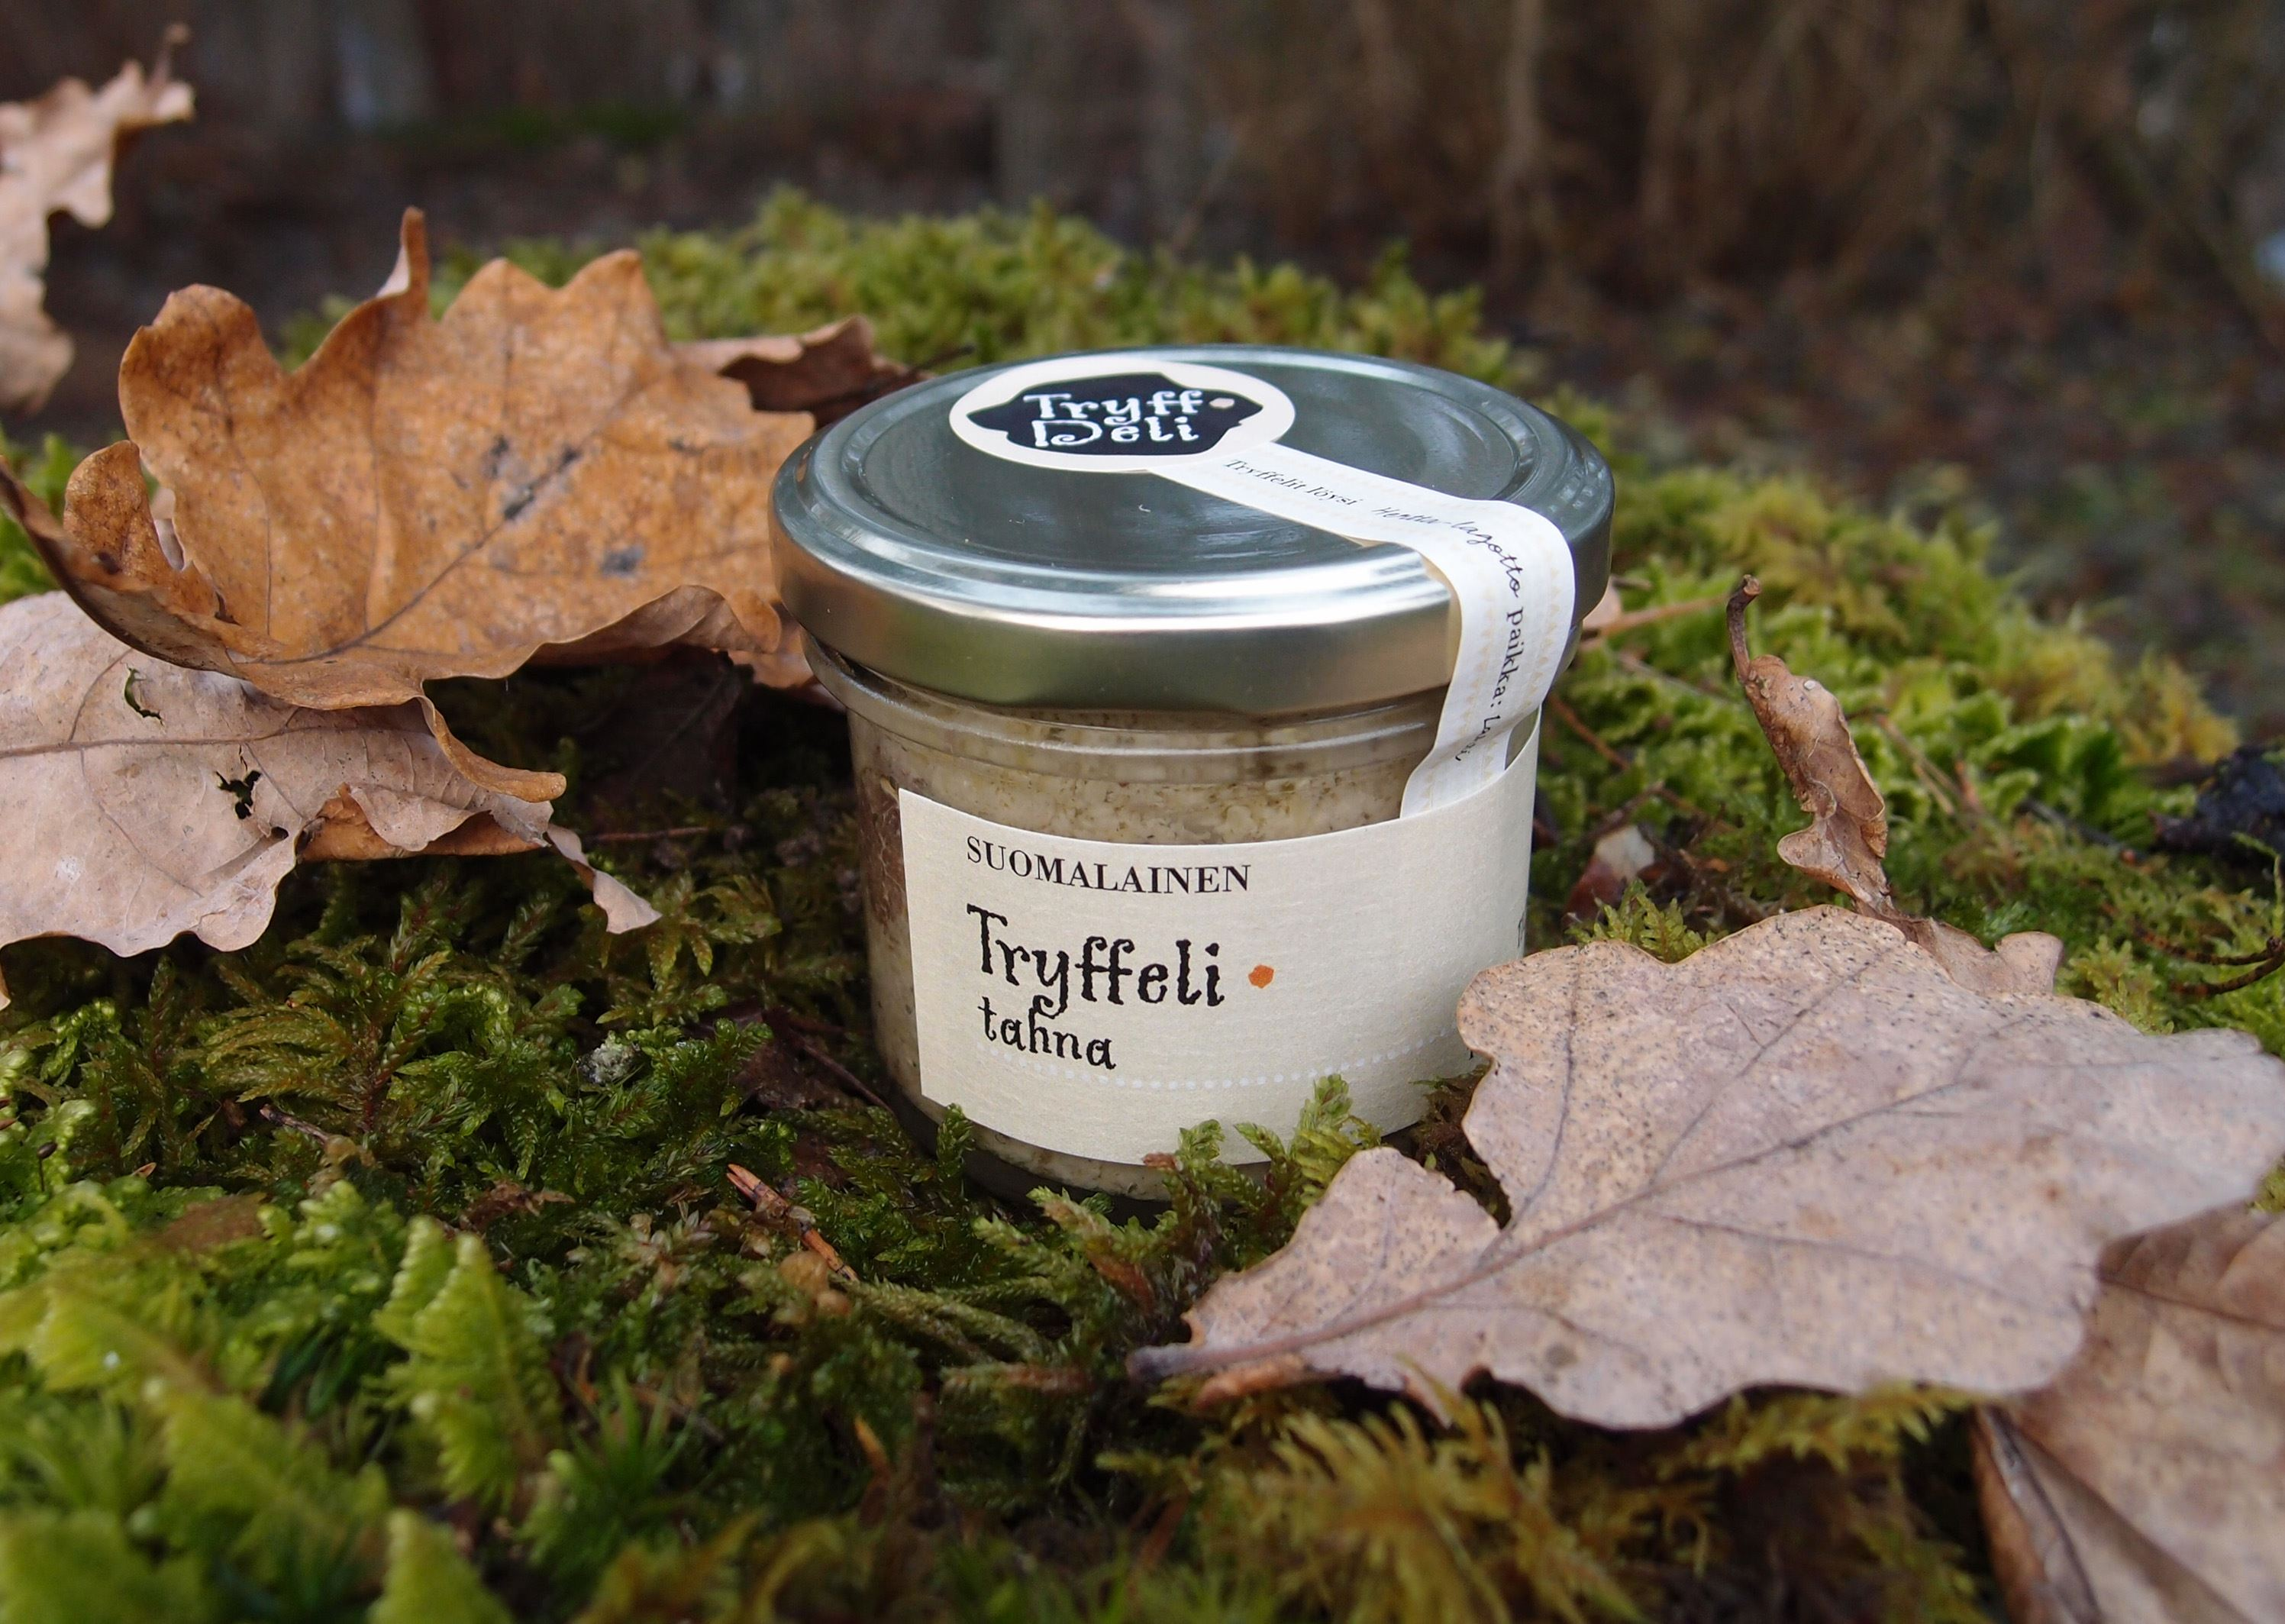 © Tryffdeli, Take a bite out of Lahti - tasting new flavors with a hint of culture